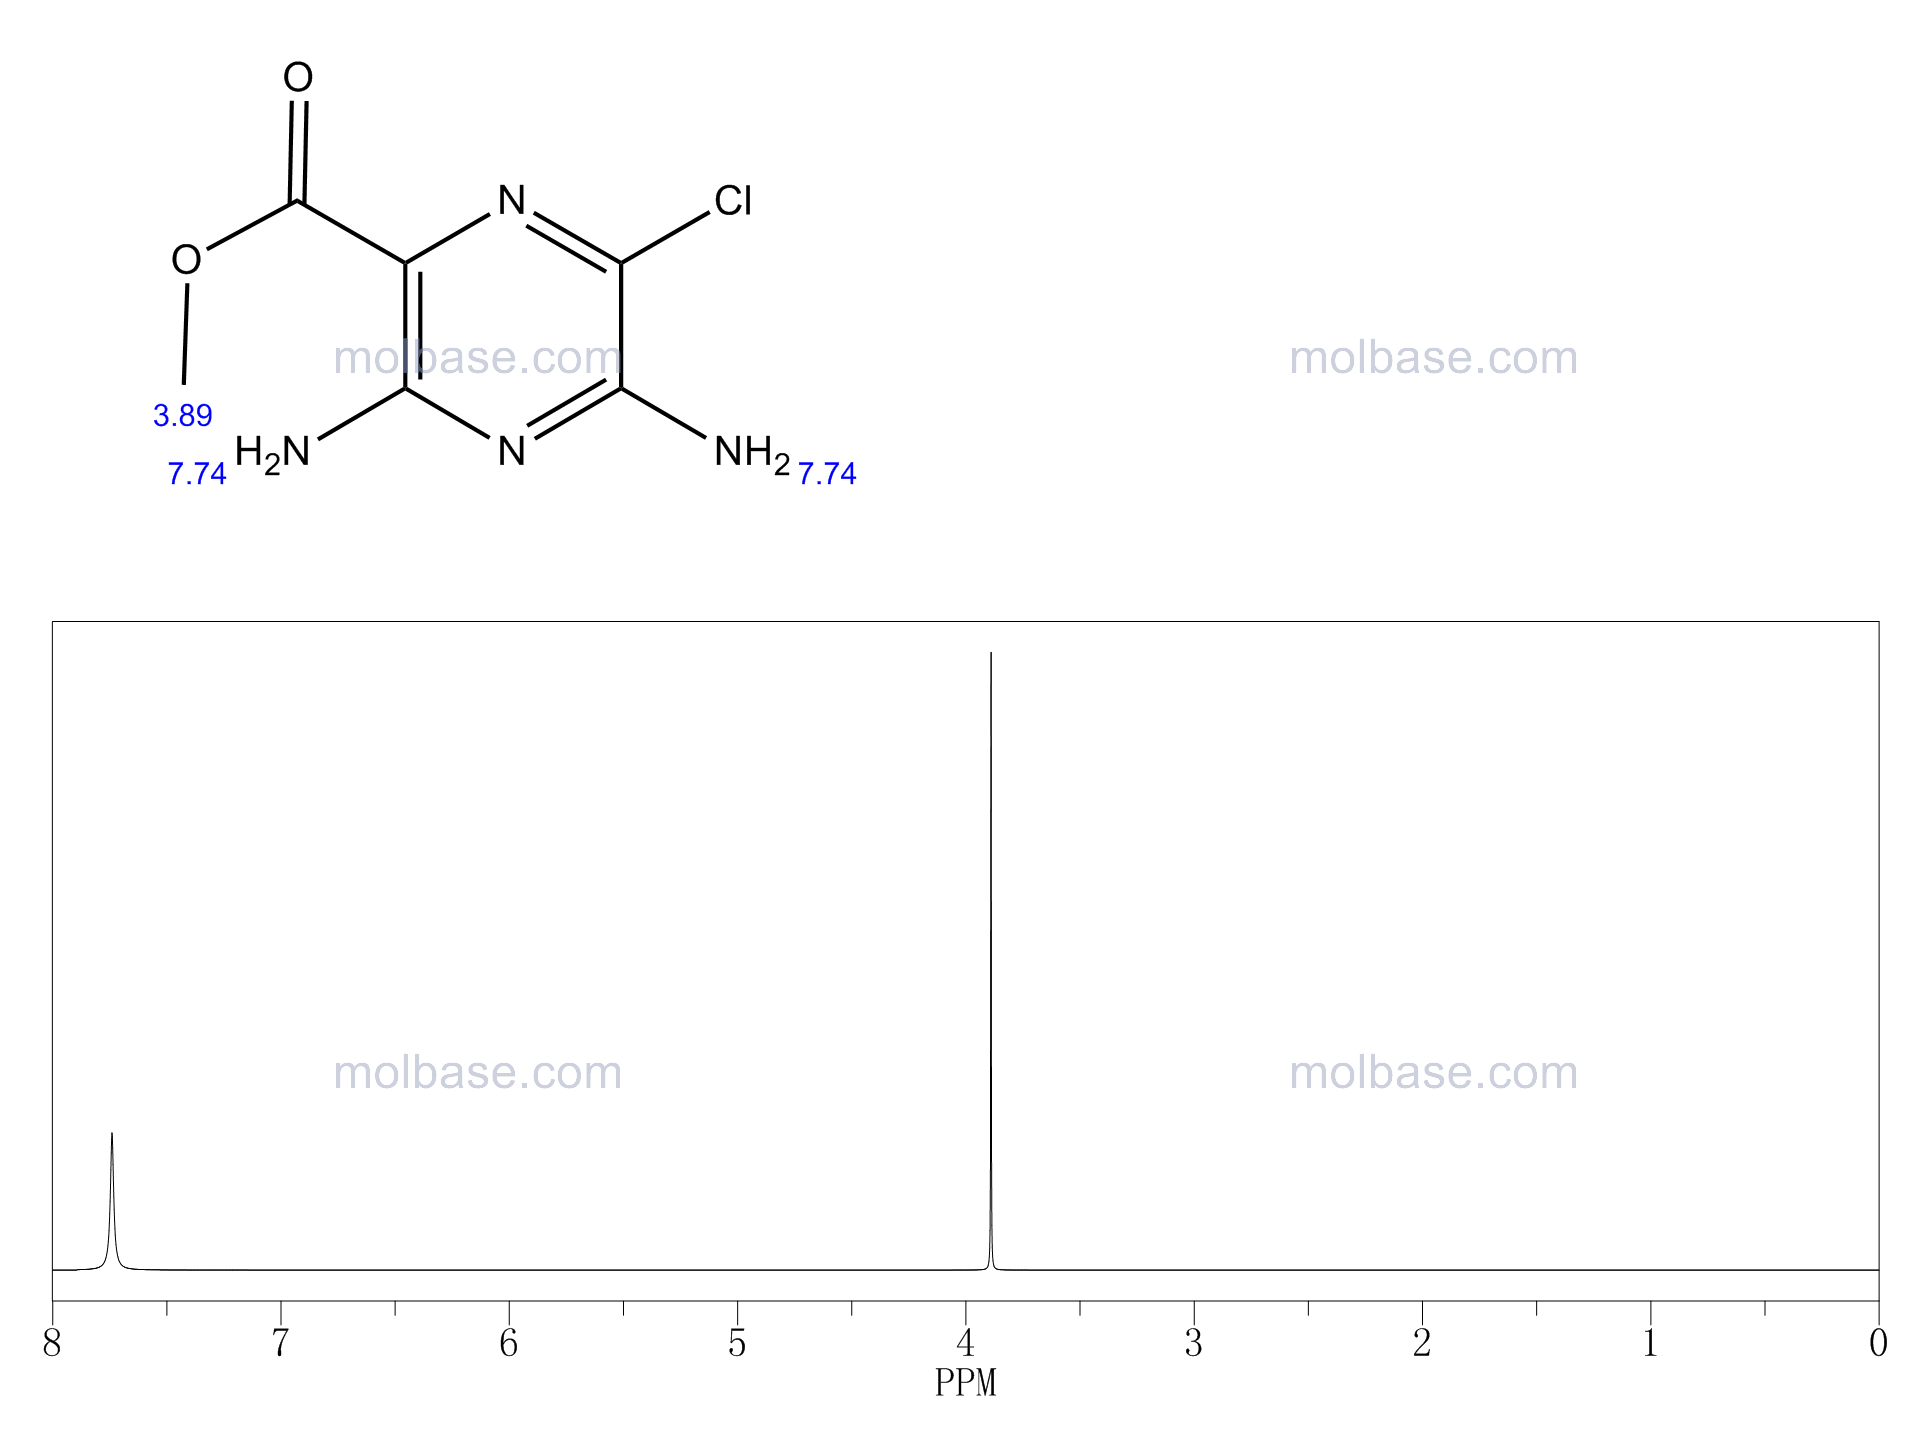 3,5-Diamino-6-chloropyrazine-2-carboxylic Acid Methyl Ester NMR spectra analysis, Chemical CAS NO. 1458-01-1 NMR spectral analysis, 3,5-Diamino-6-chloropyrazine-2-carboxylic Acid Methyl Ester C-NMR spectrum